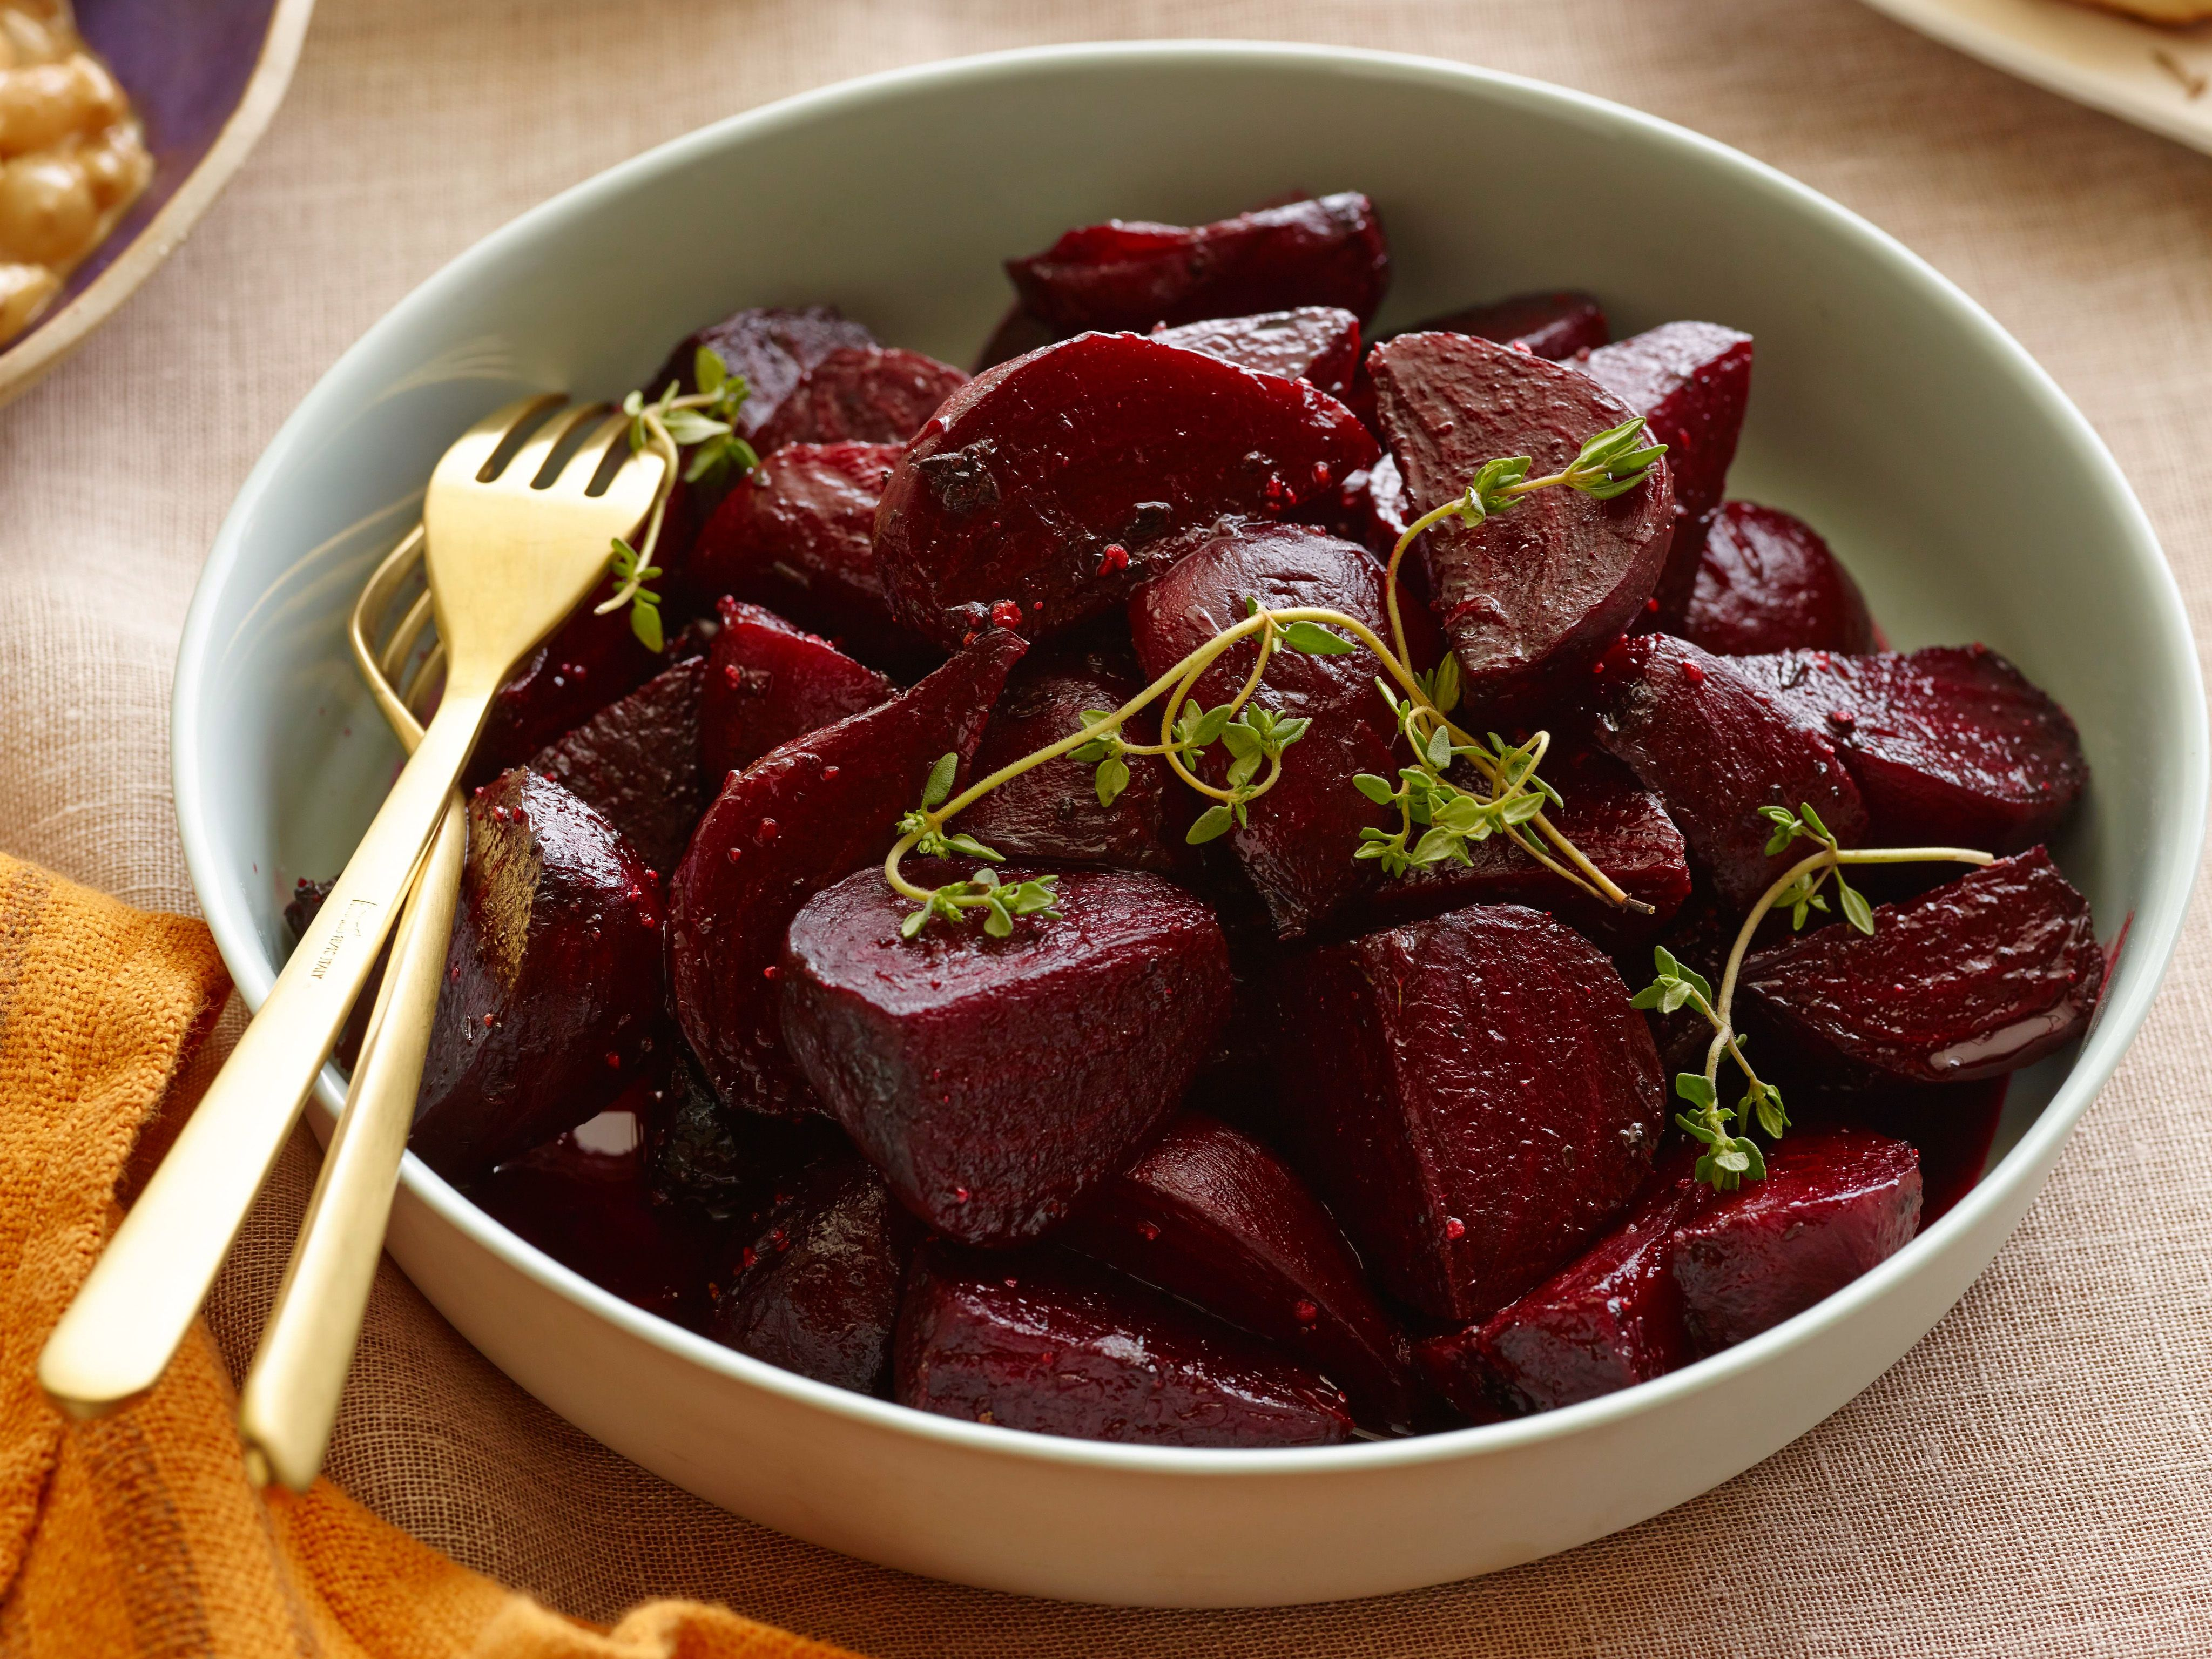 roasted beets recipe ina garten food network for a beautiful jewel toned - Ina Garten Baked Bacon